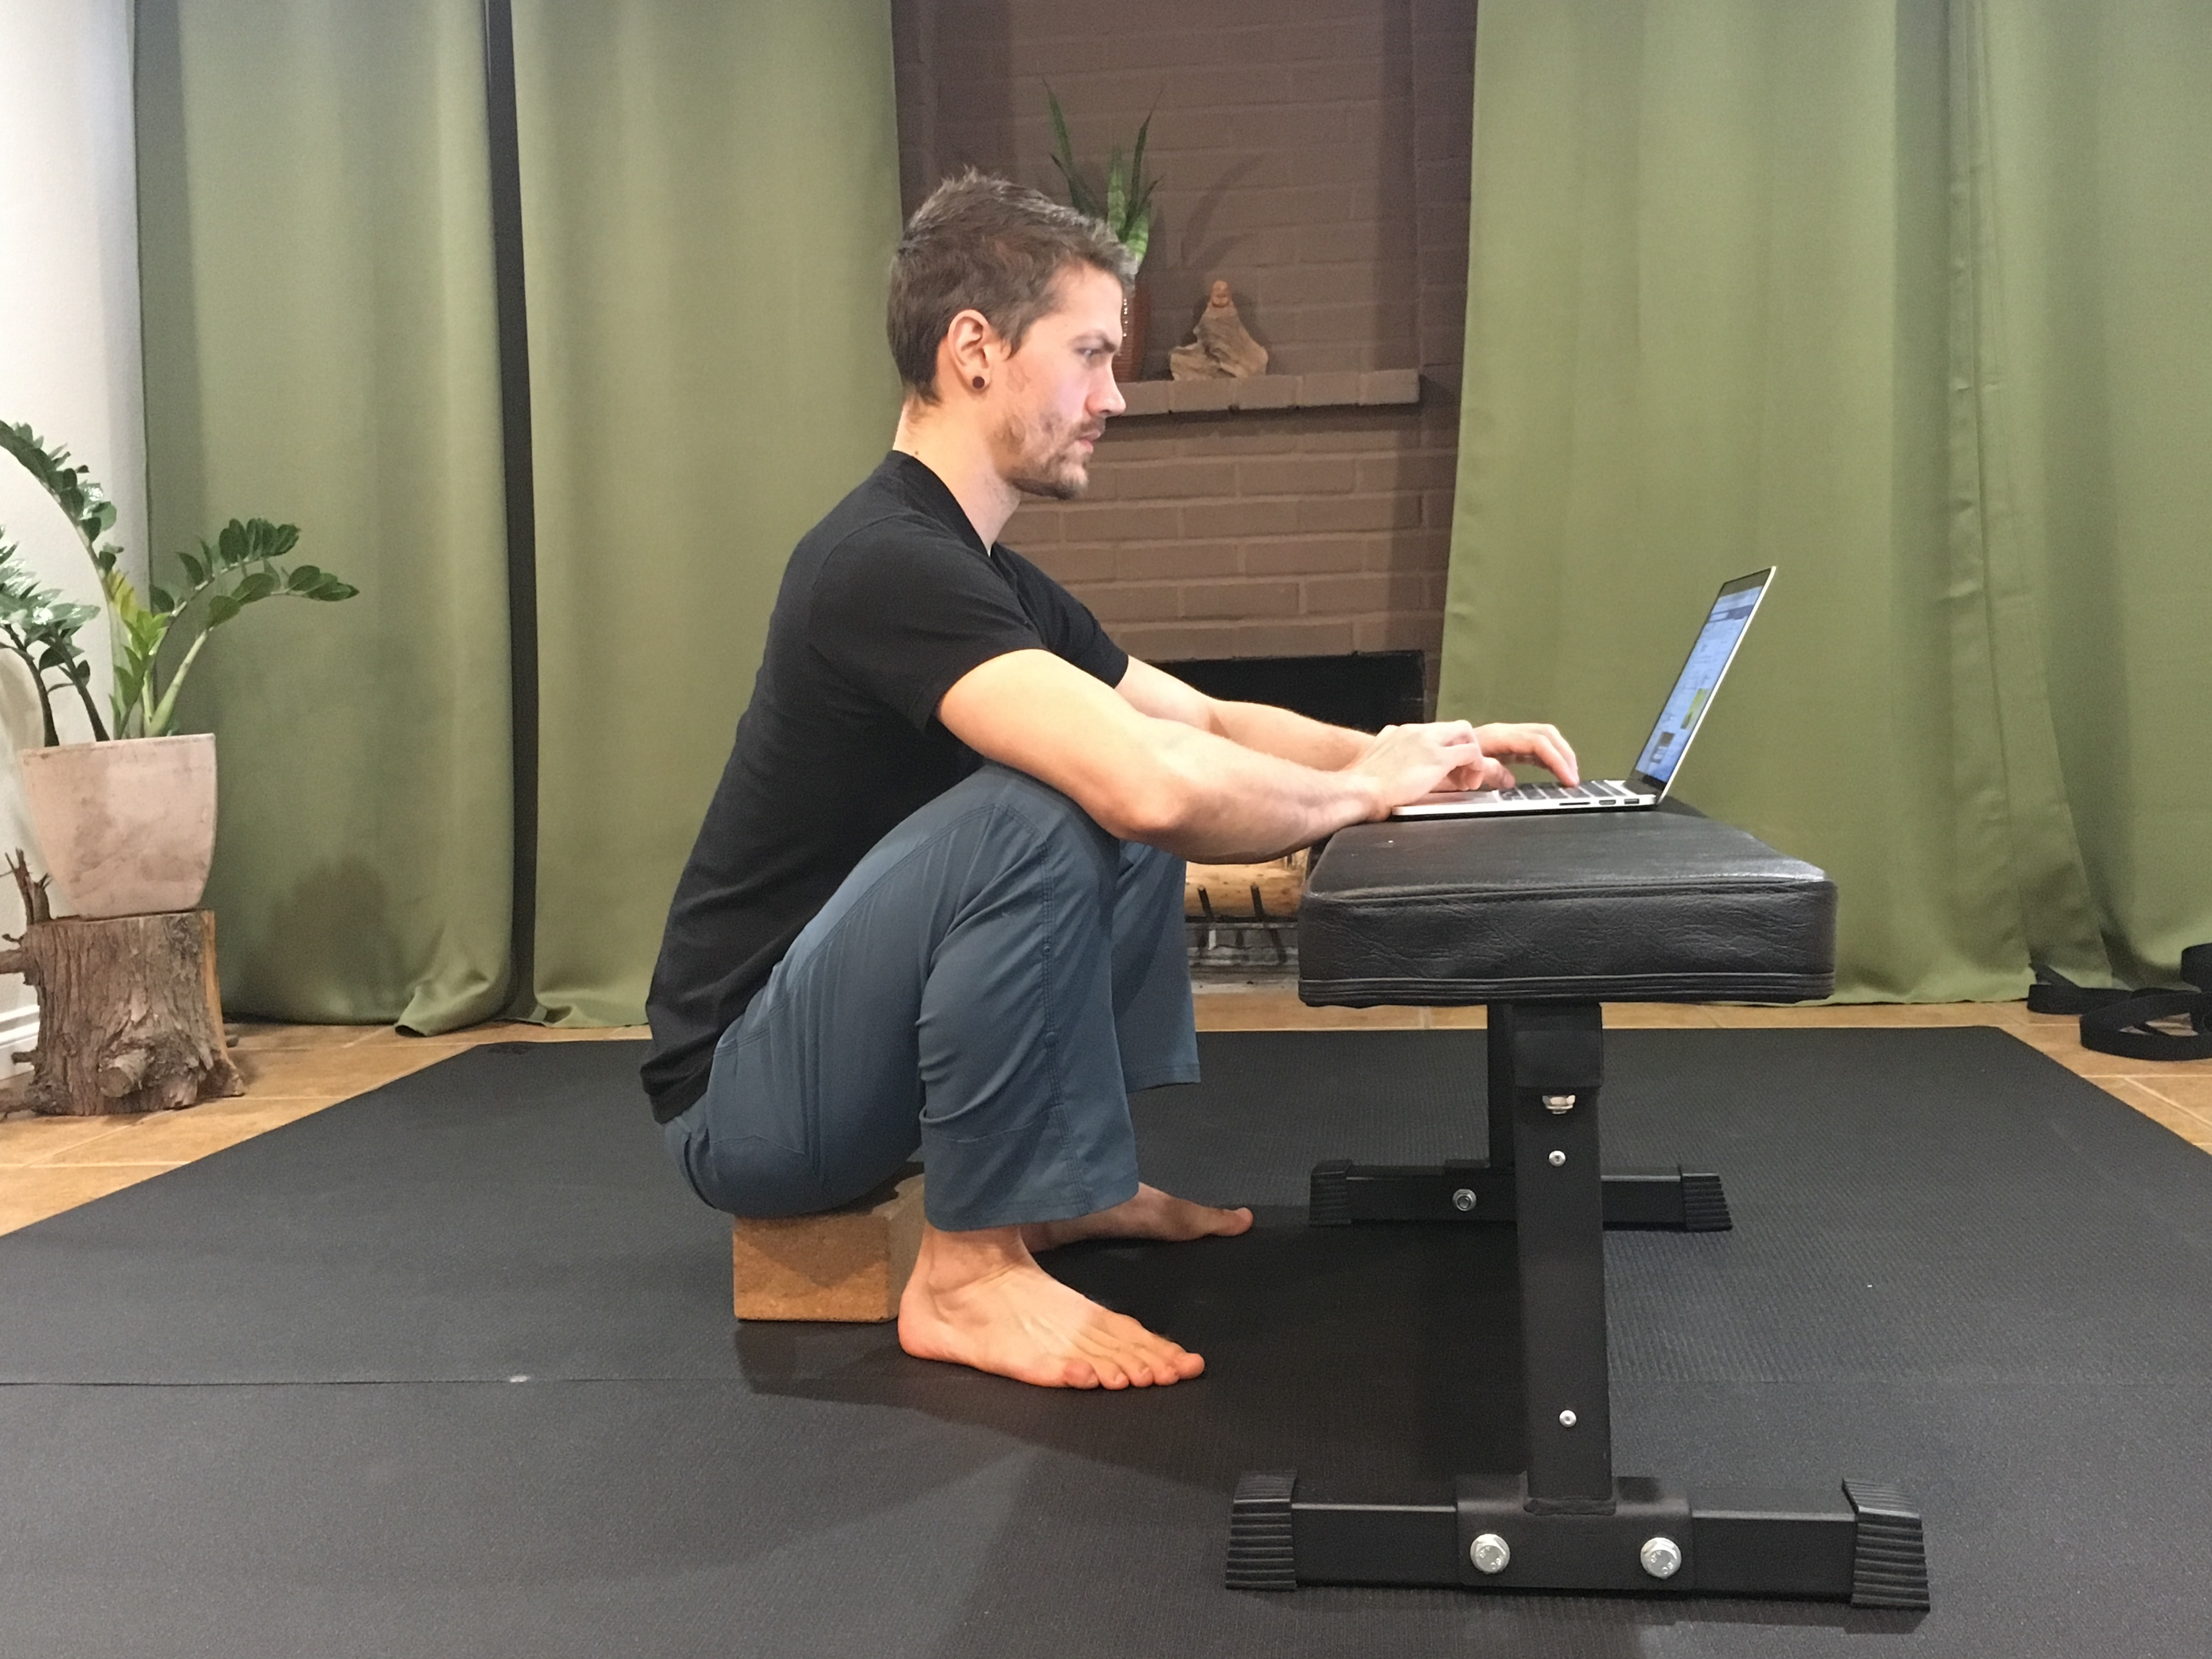 The 5×5 Habit for Better Mobility Working on Your Laptop